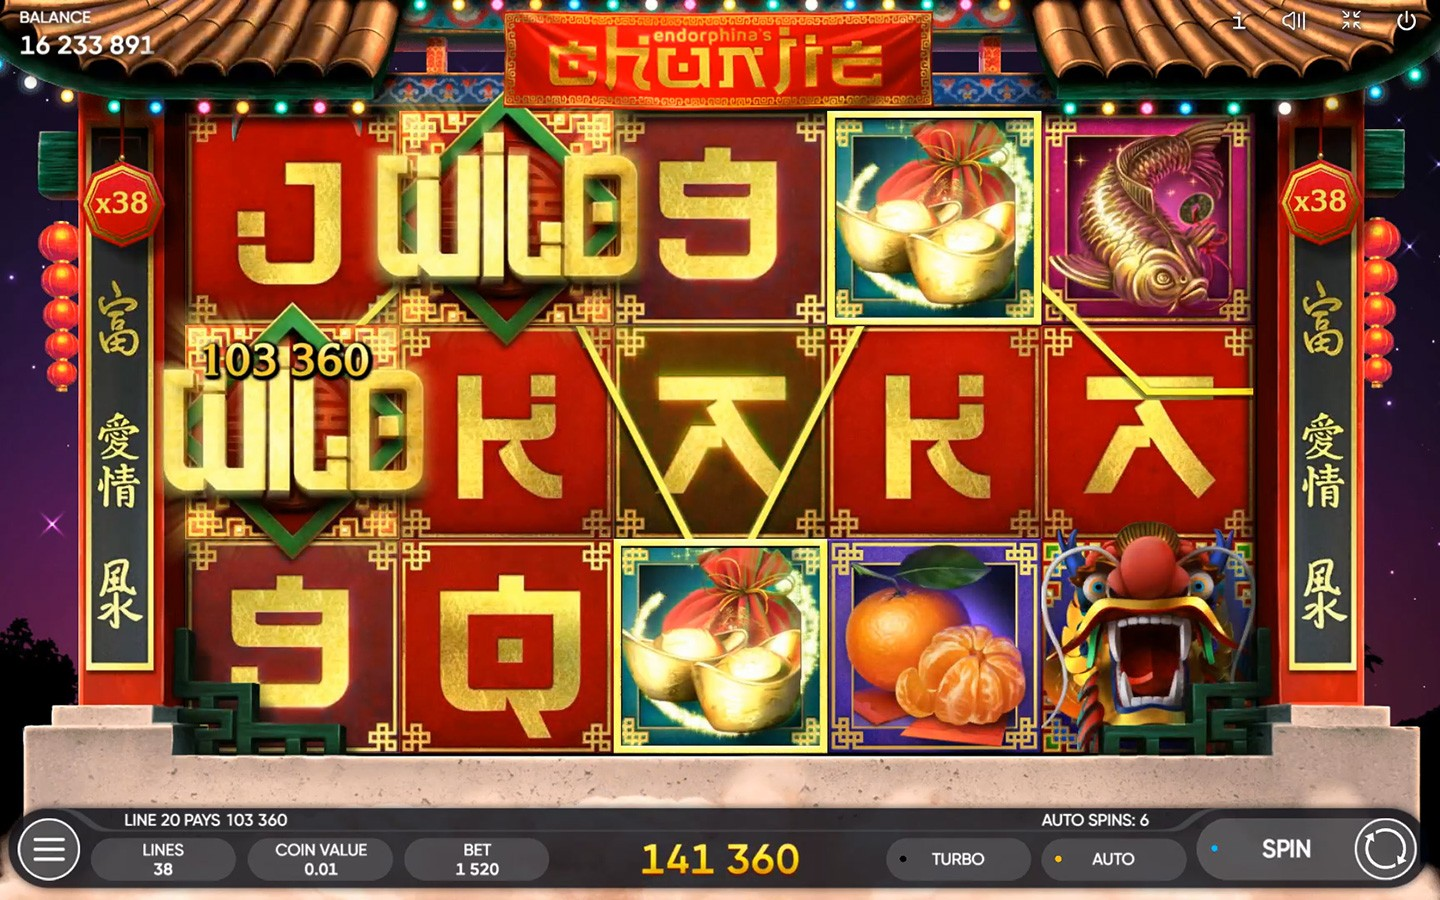 TOP CHINESE SLOTS OF 2020 | Play CHUNJIE SLOT online!